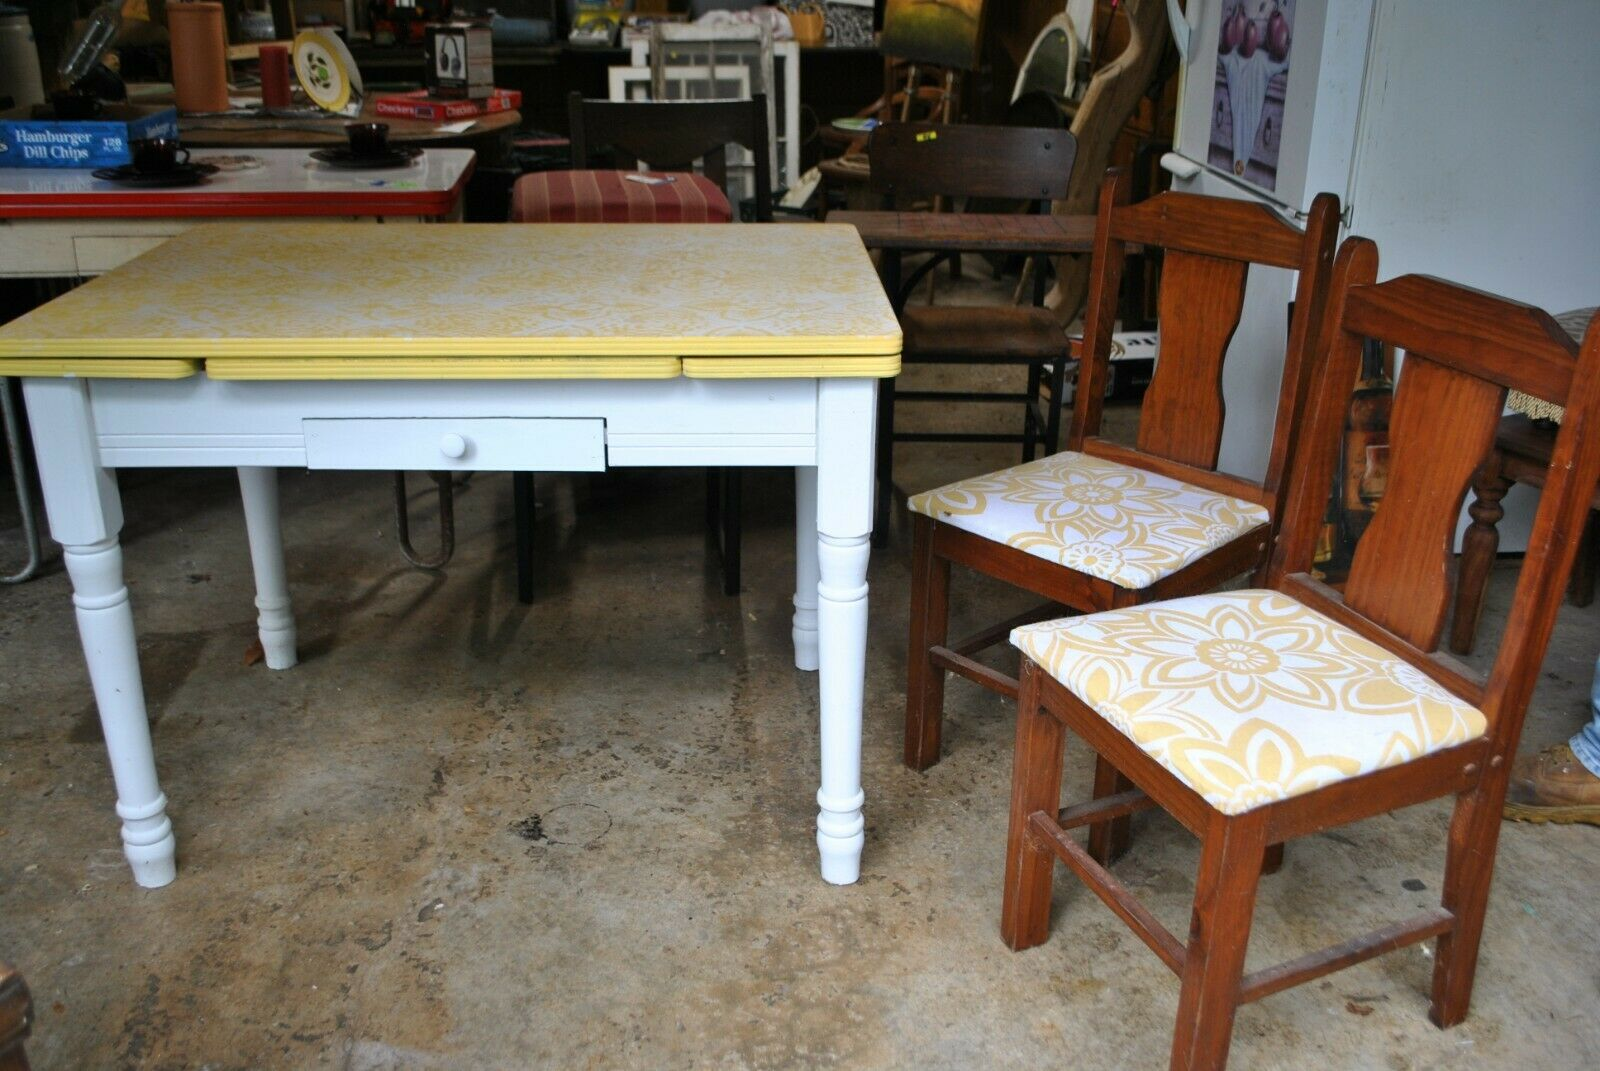 Photo Yellow and White Vintage Enamel top table WITH chairs